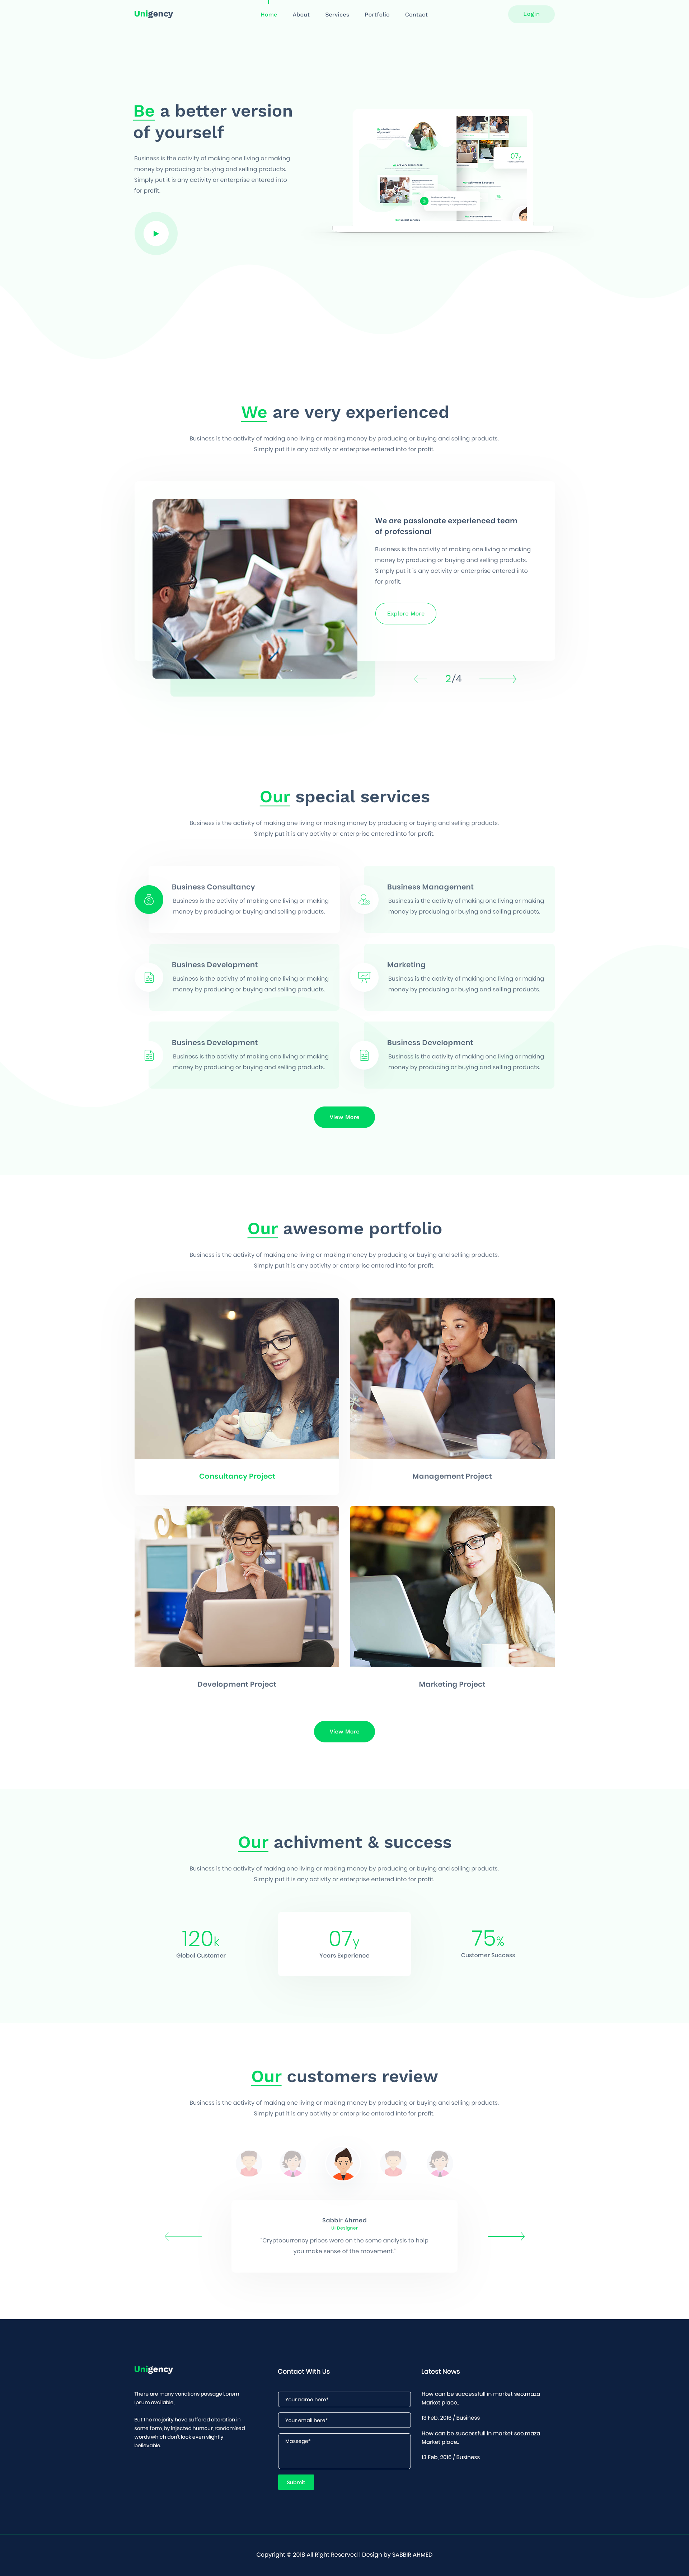 01. home page